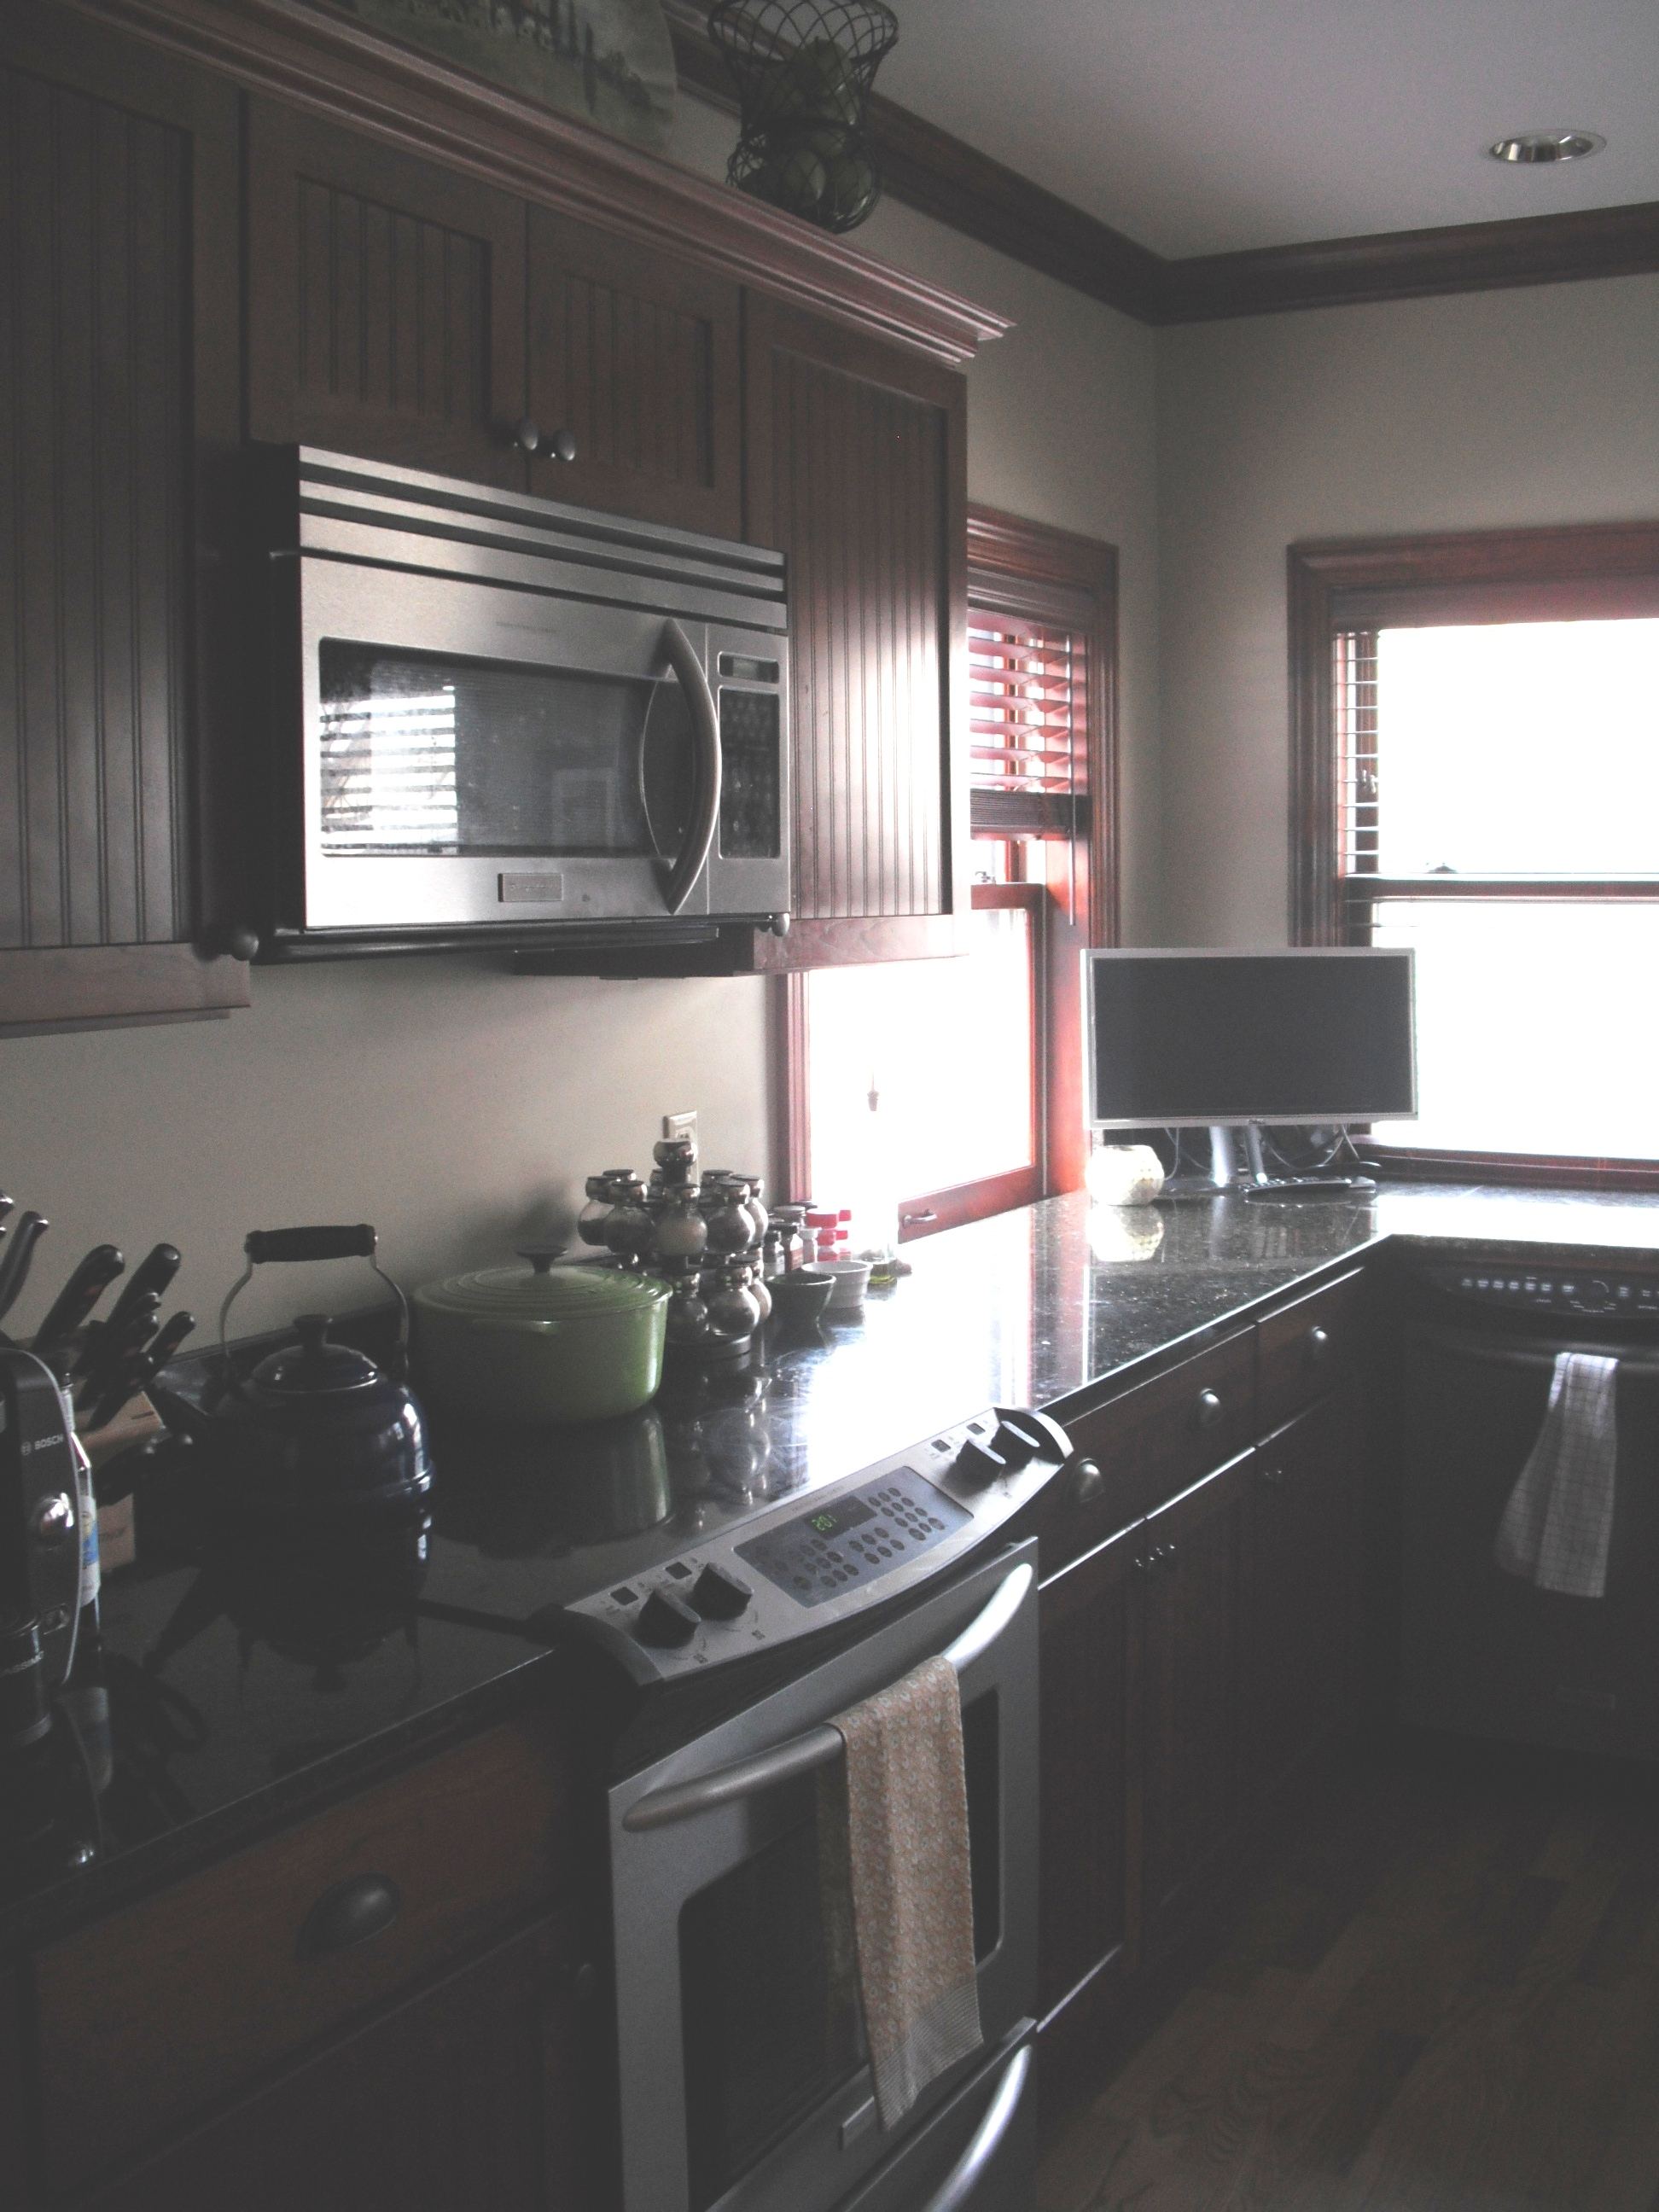 1437 300 kitchen microwave.jpg